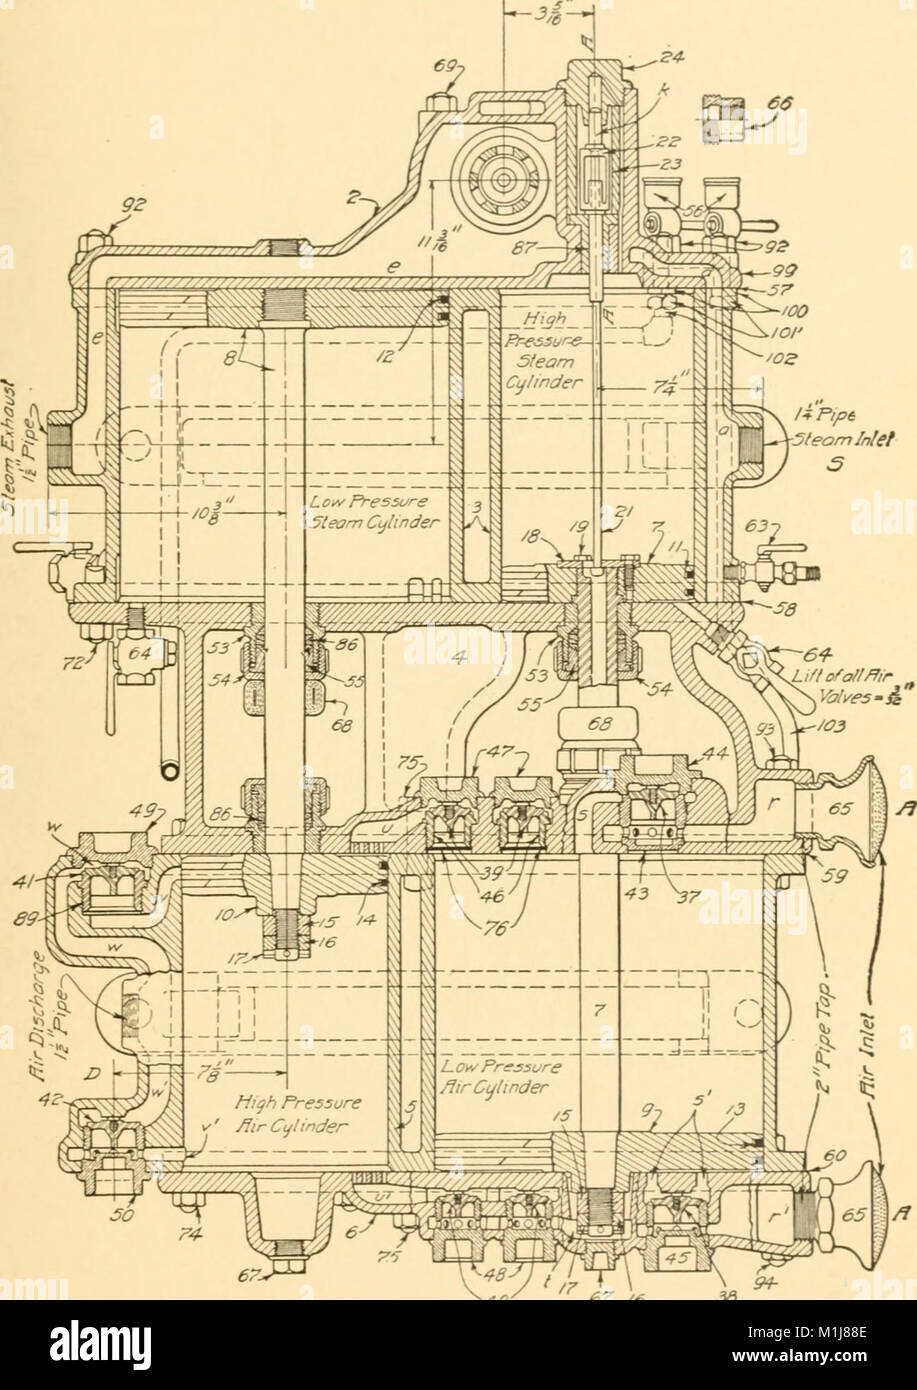 Air Brakes Stock Photos Images Alamy Schematic An Up To Date Treatise On The Westinghouse Brake As